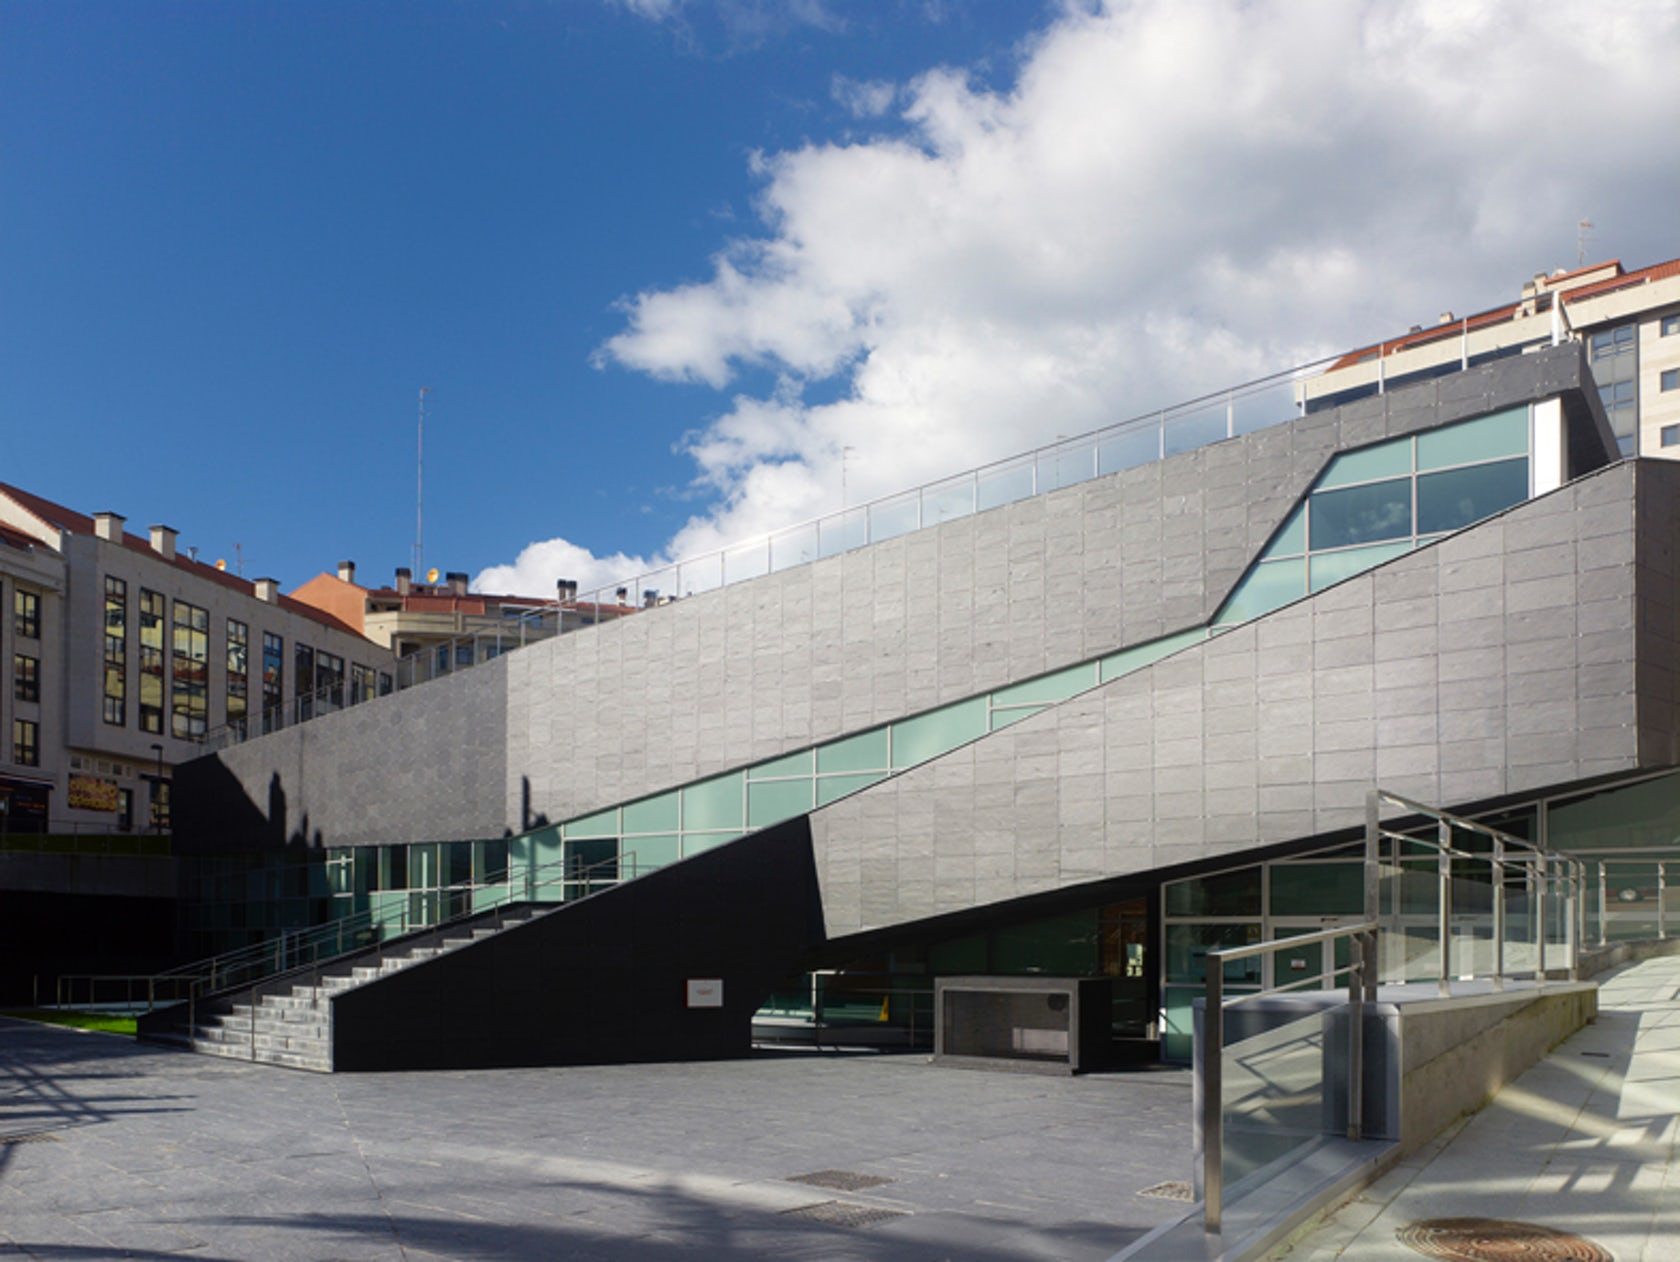 Sport complex and swimming pool in la florida vigo spain - Estudios arquitectura coruna ...